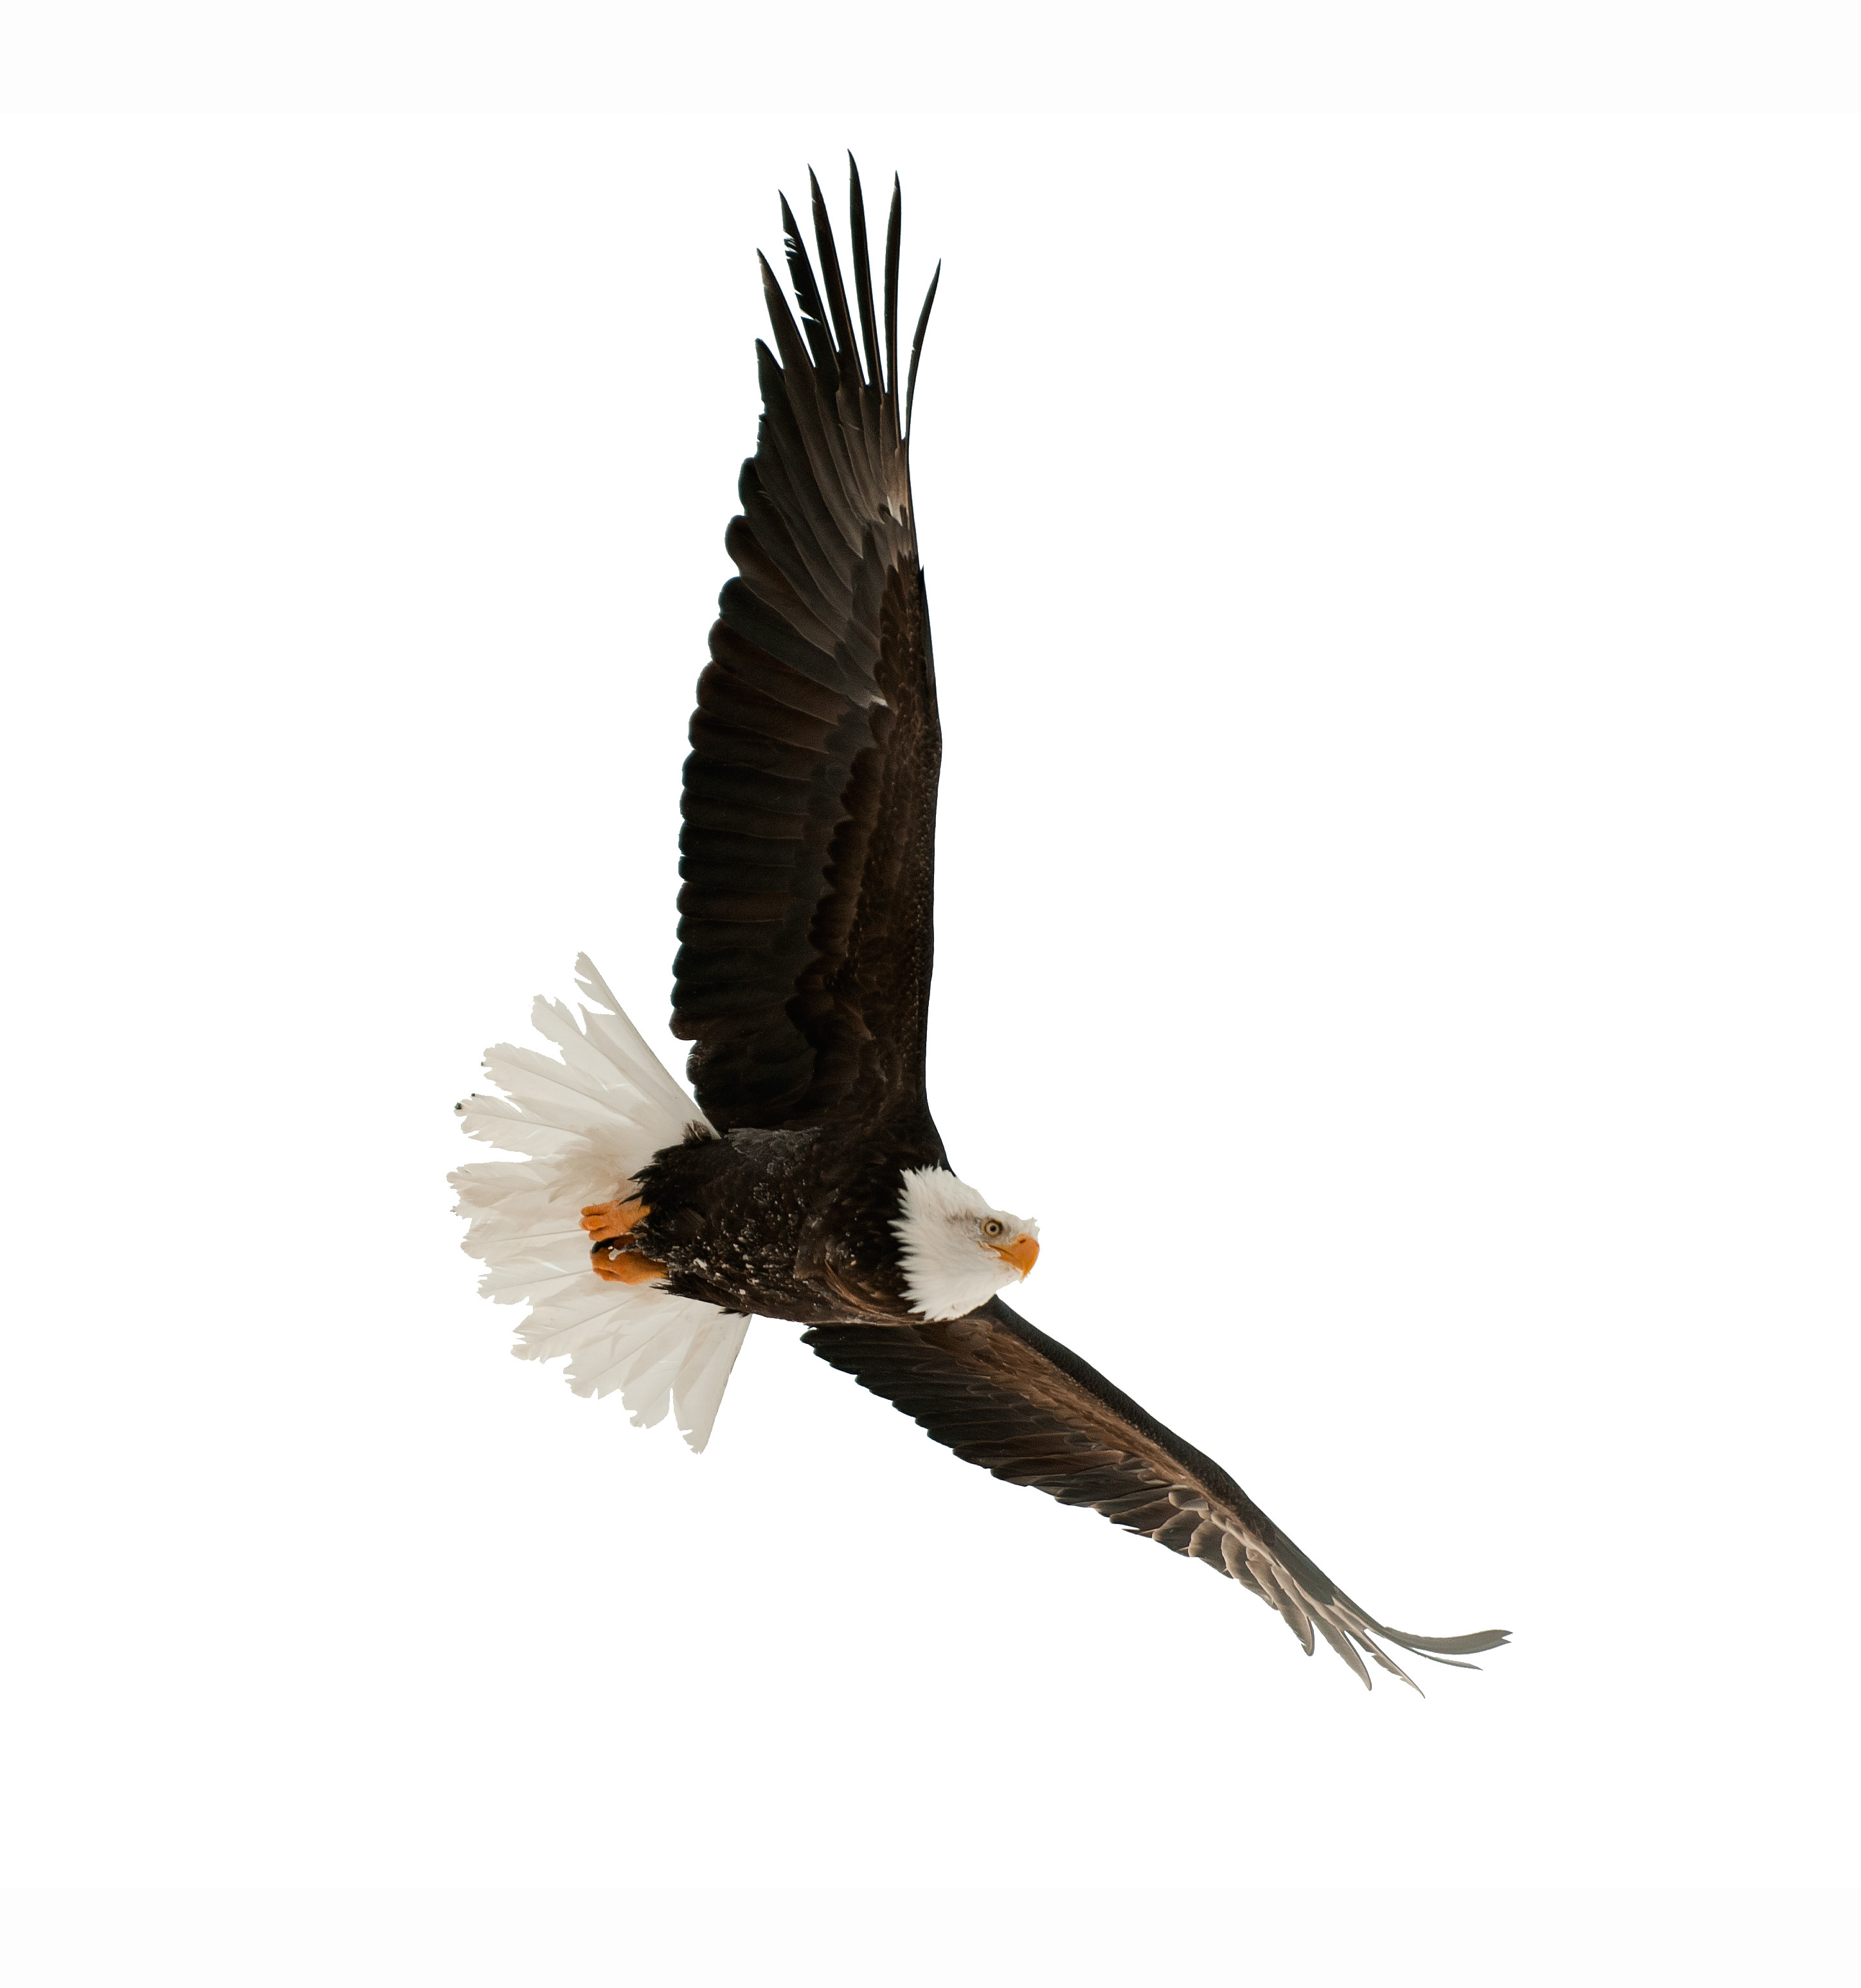 eagle - canstockphoto8120543